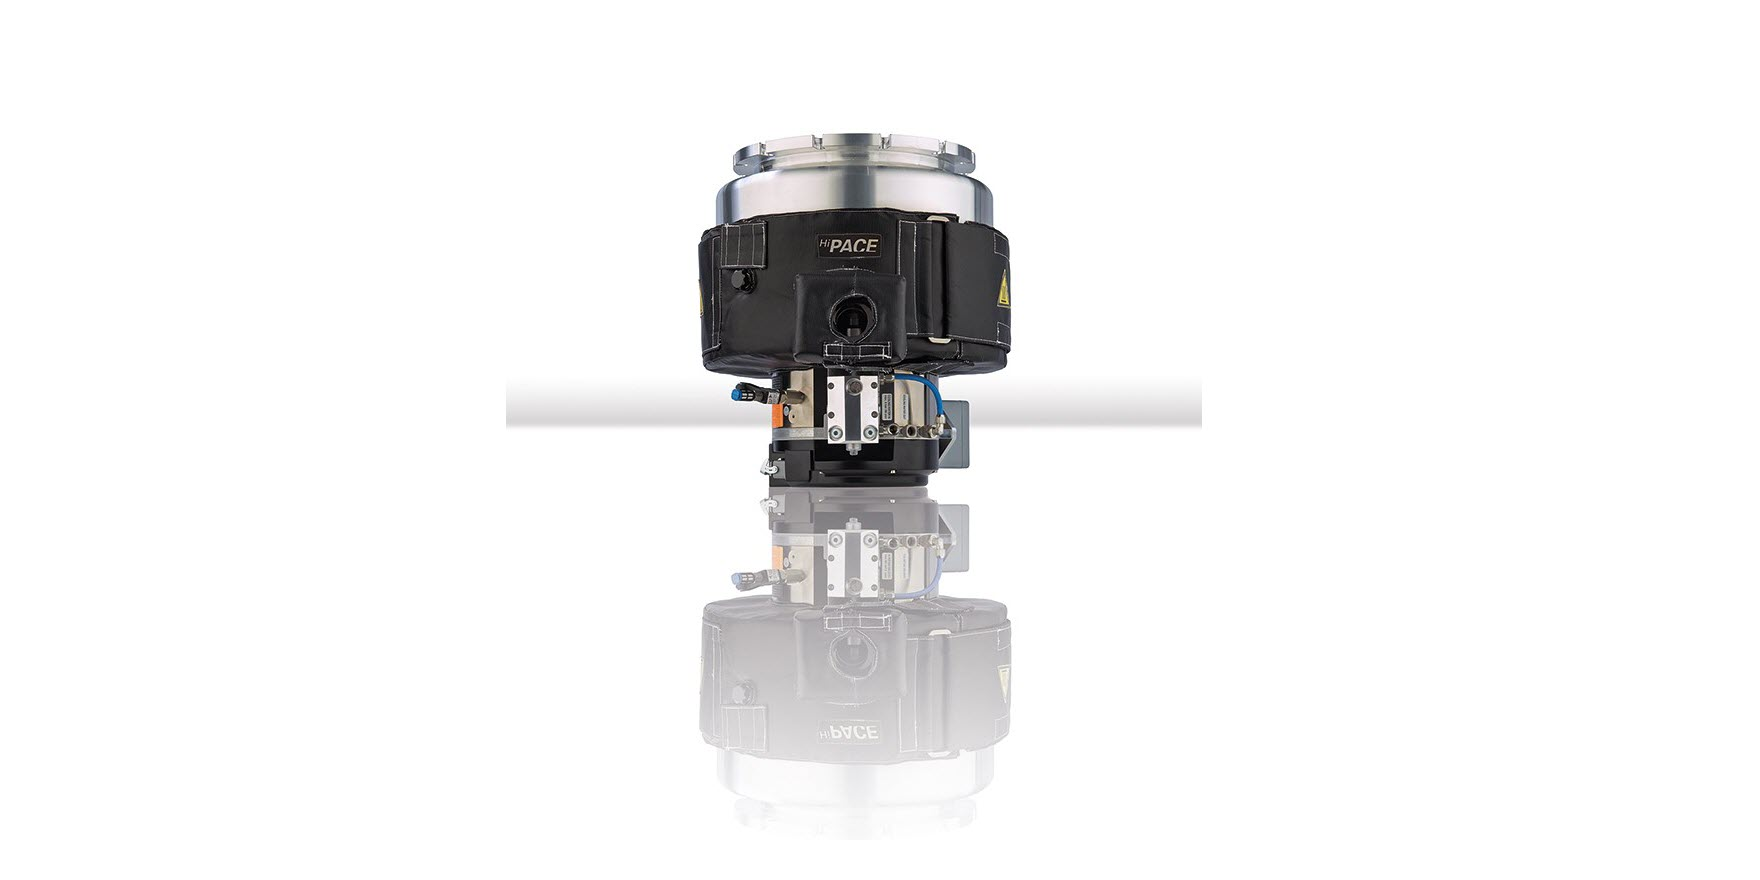 Pfeiffer Vacuum Presents New Turbopump for Ion Implantation Applications: HiPace 2800 IT